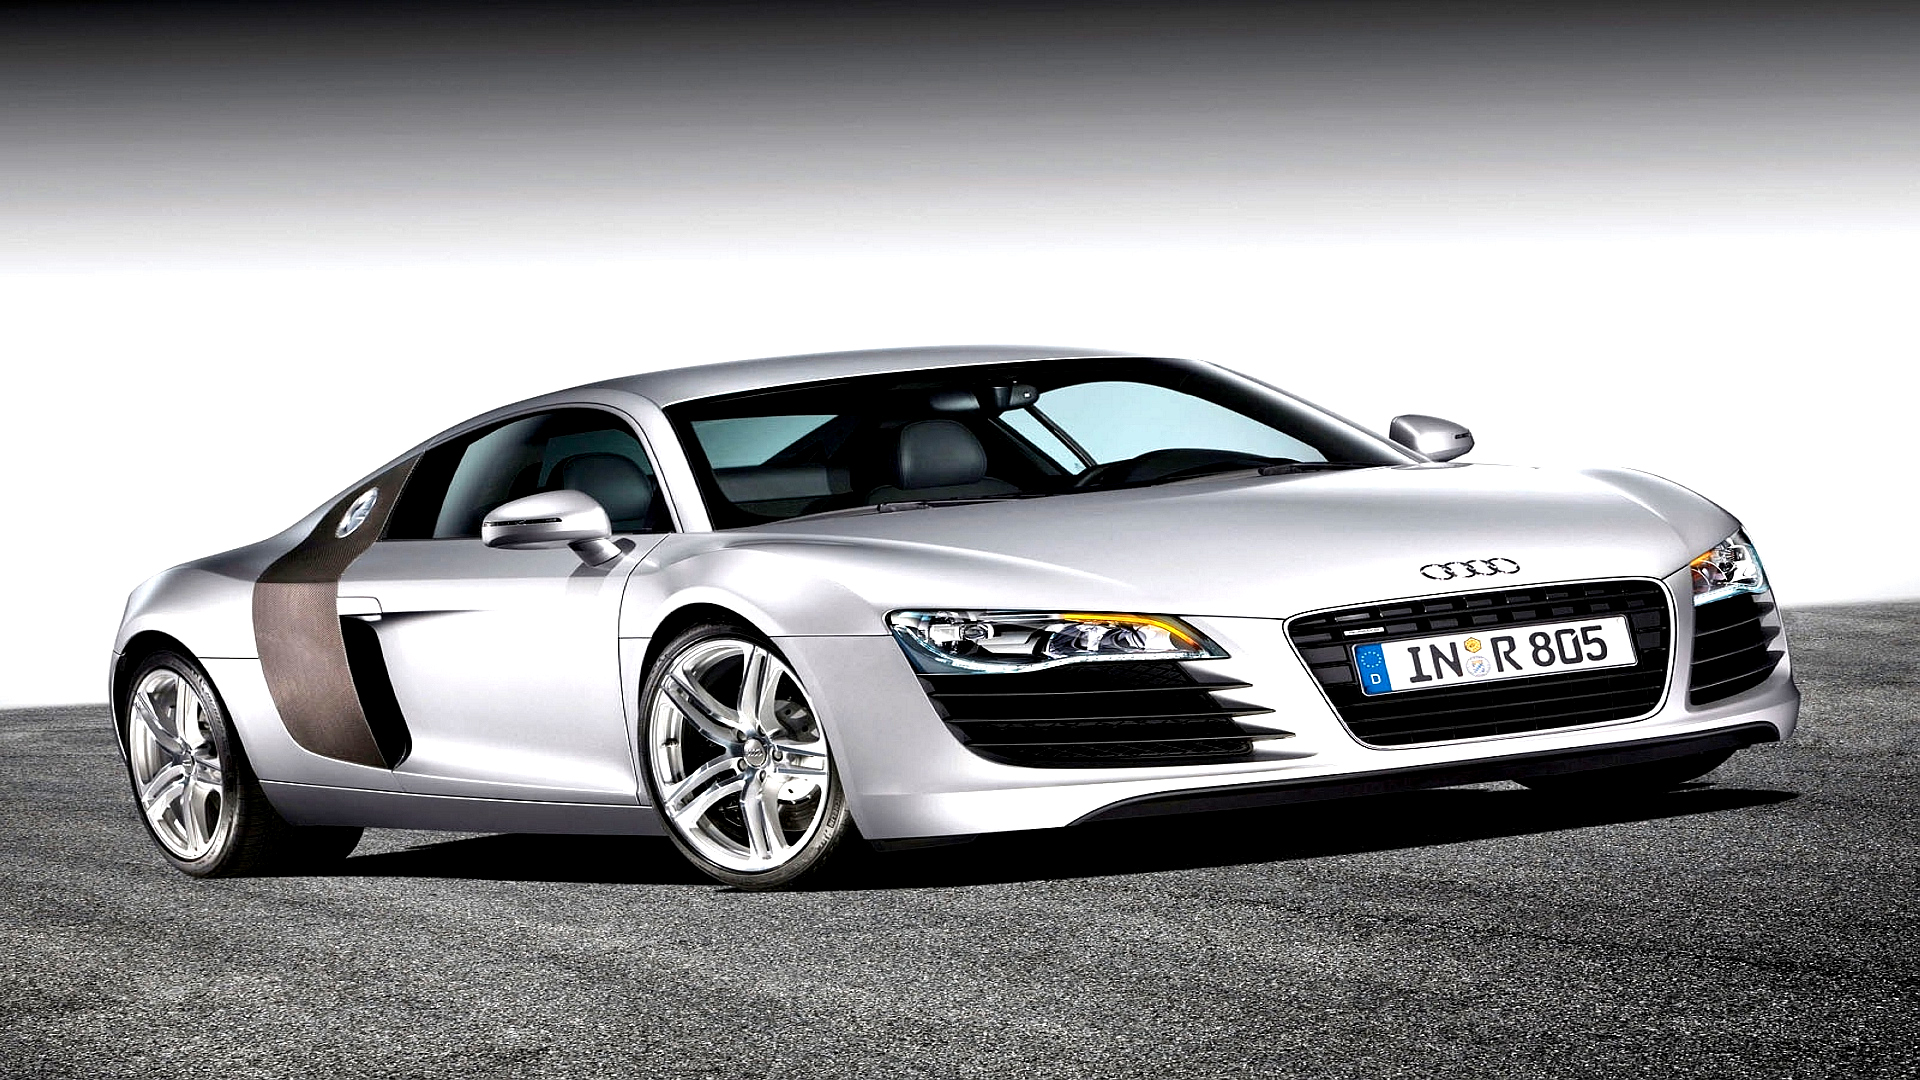 Wallpaper of Sports Car Ever Best Collection download